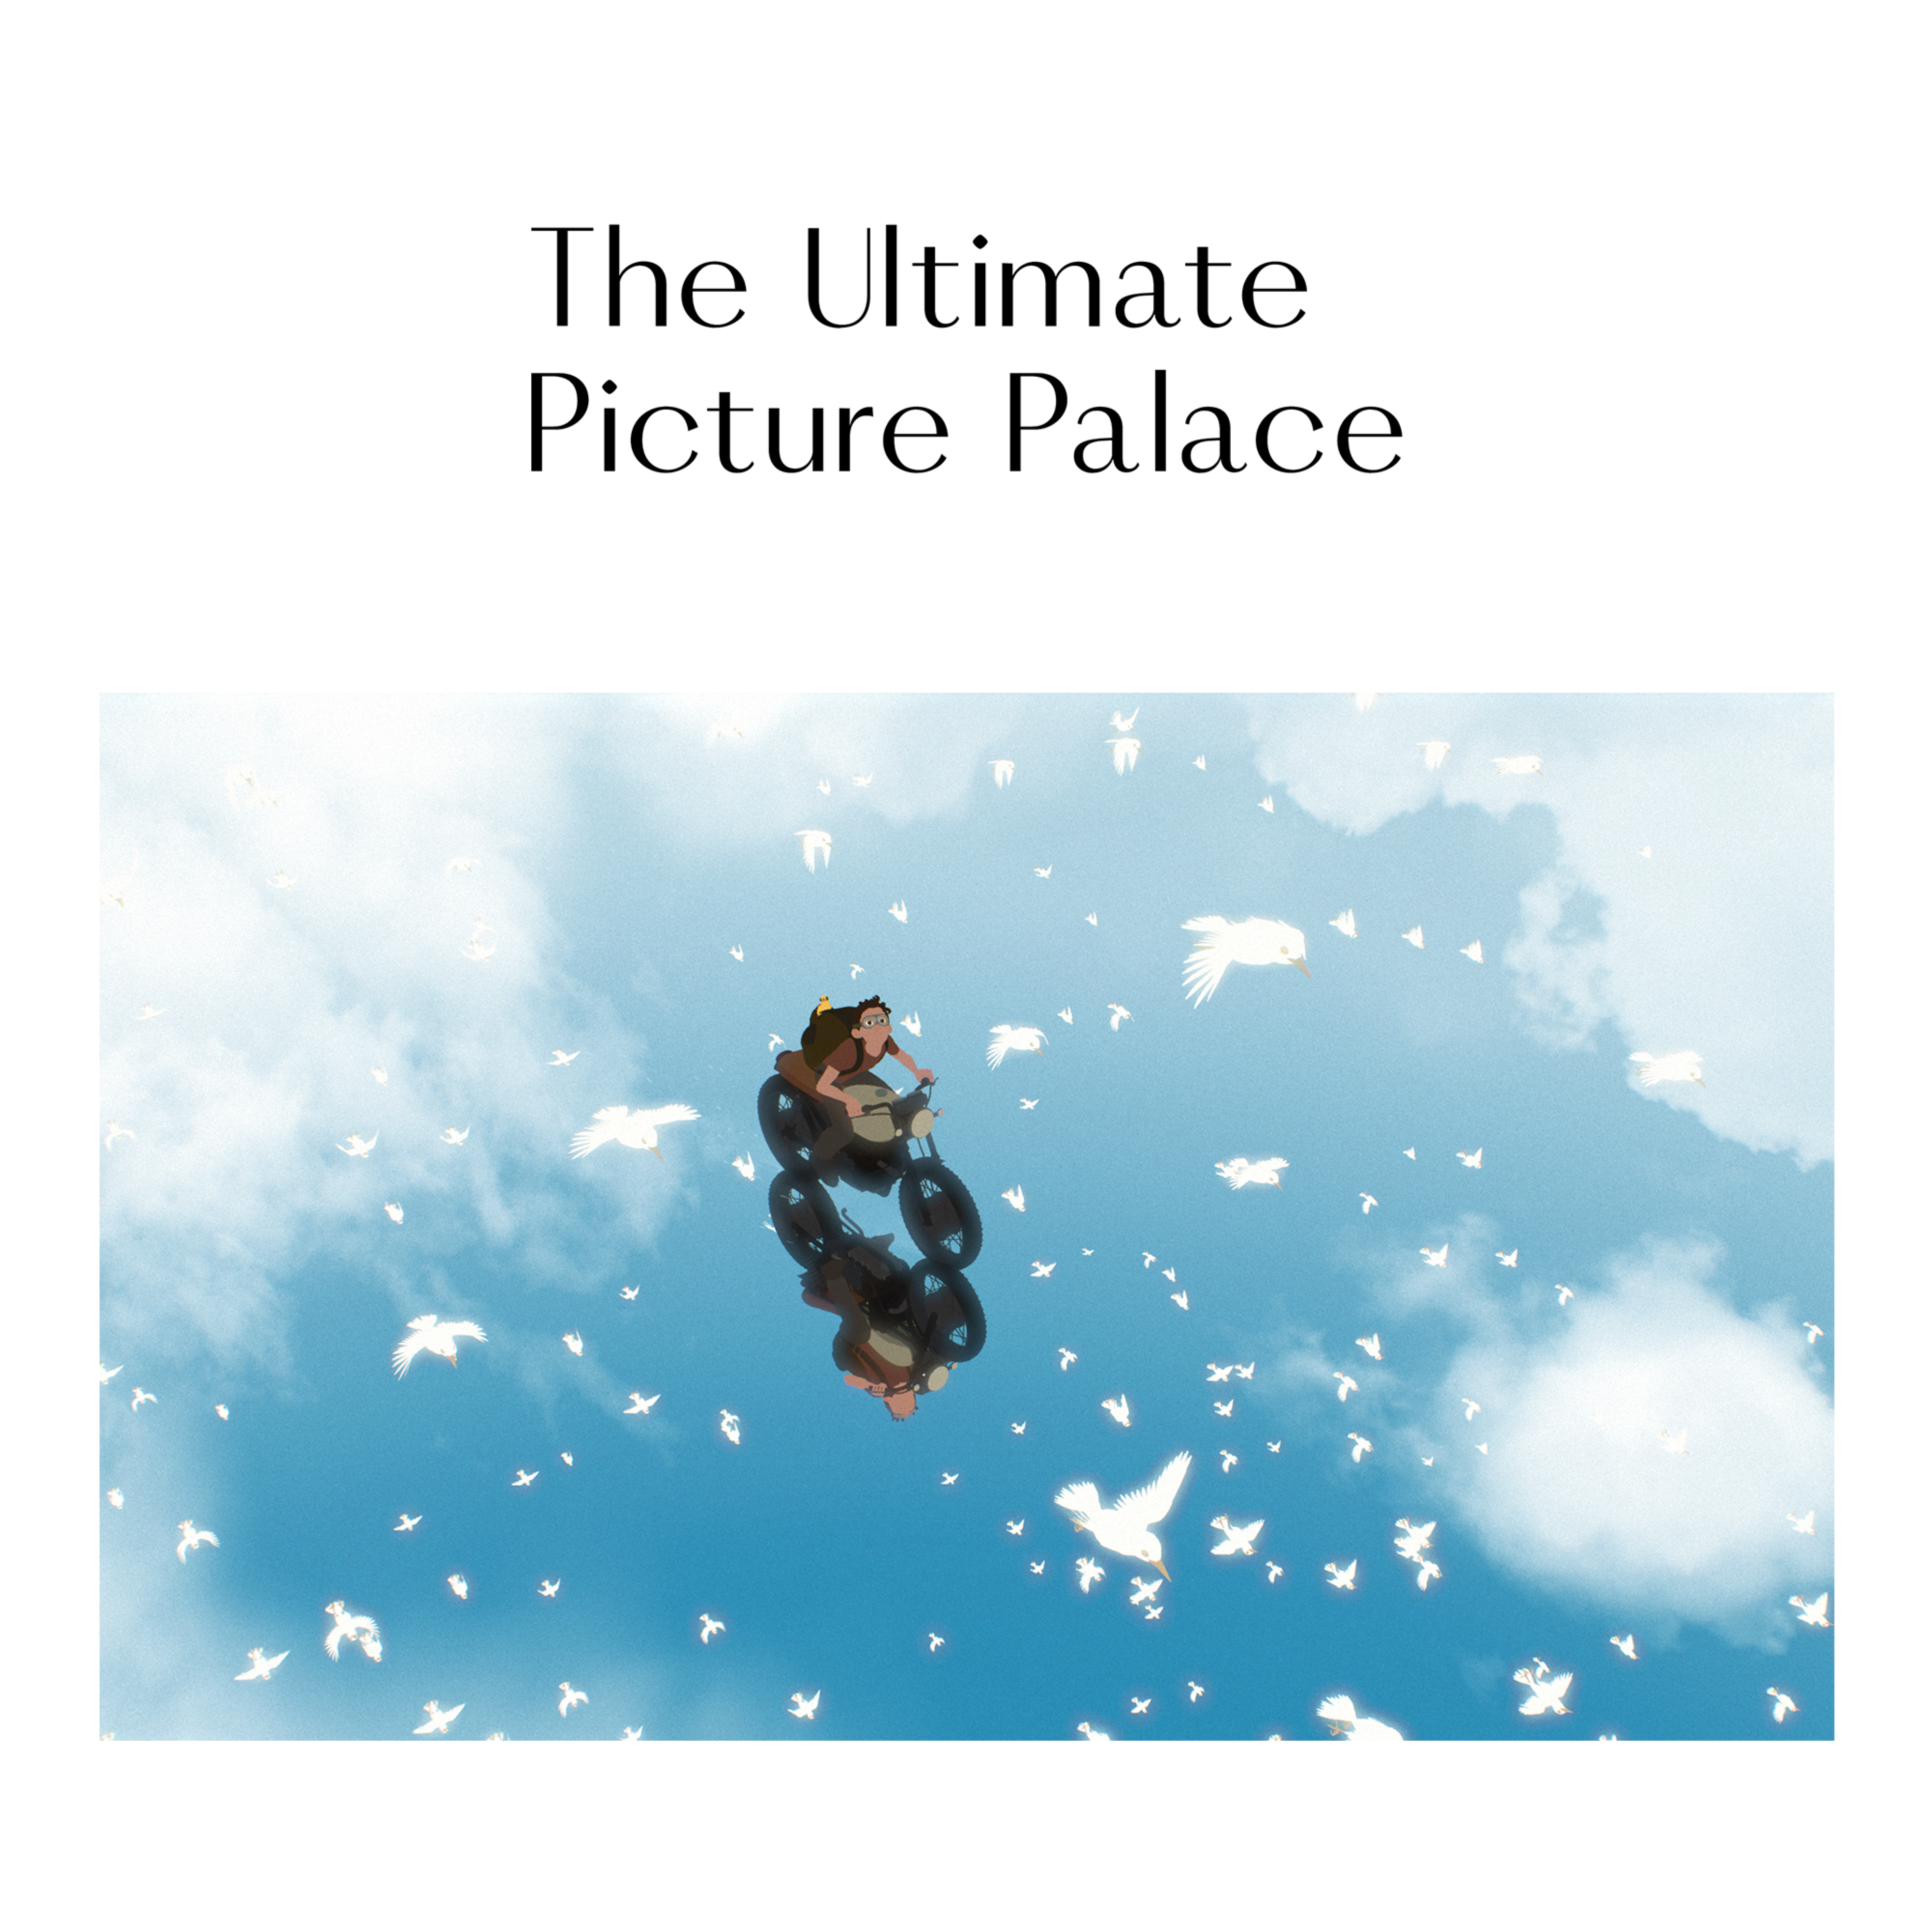 AWAY at The Ultimate Picture Palace